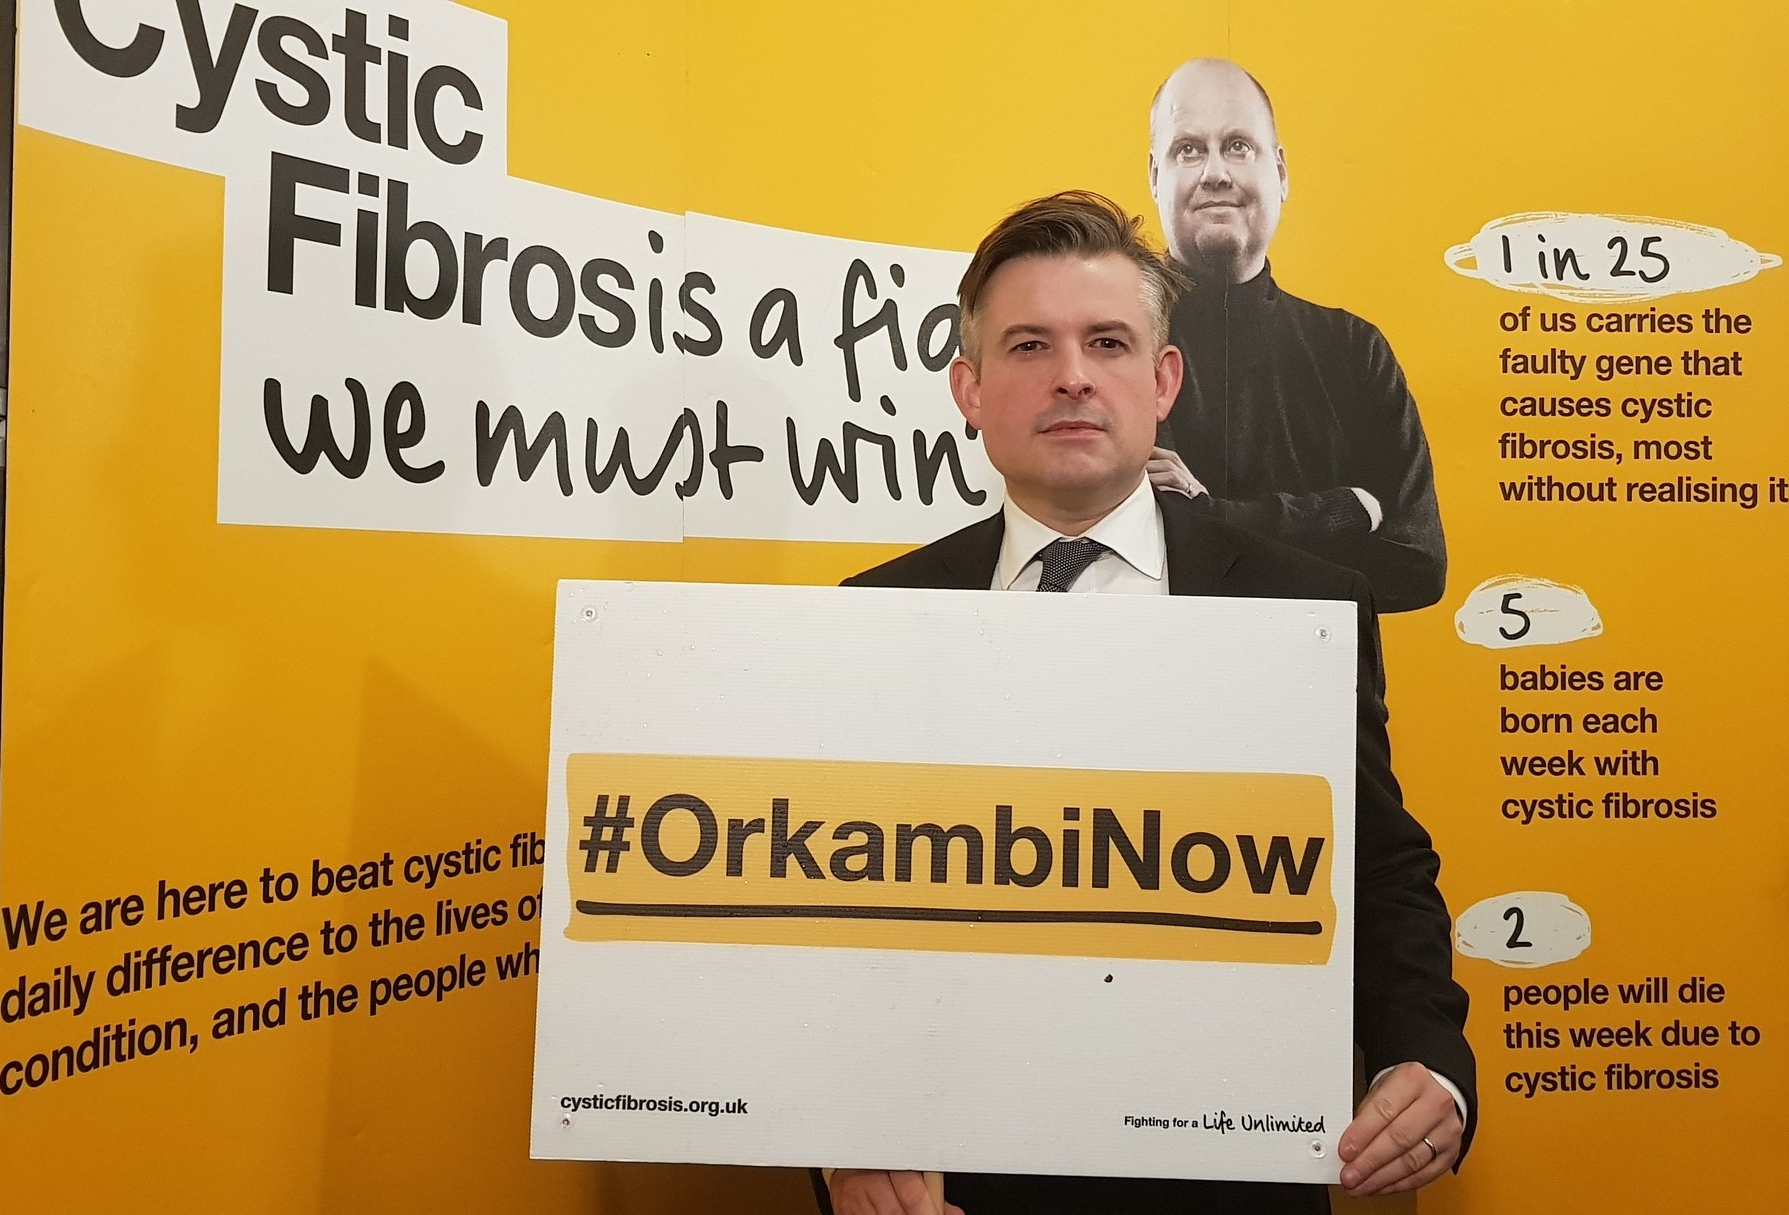 Jon joined MPs of all Parties calling to end the wait for access to Orkambi for people with cystic fibrosis in the UK - Wednesday November 21 2018